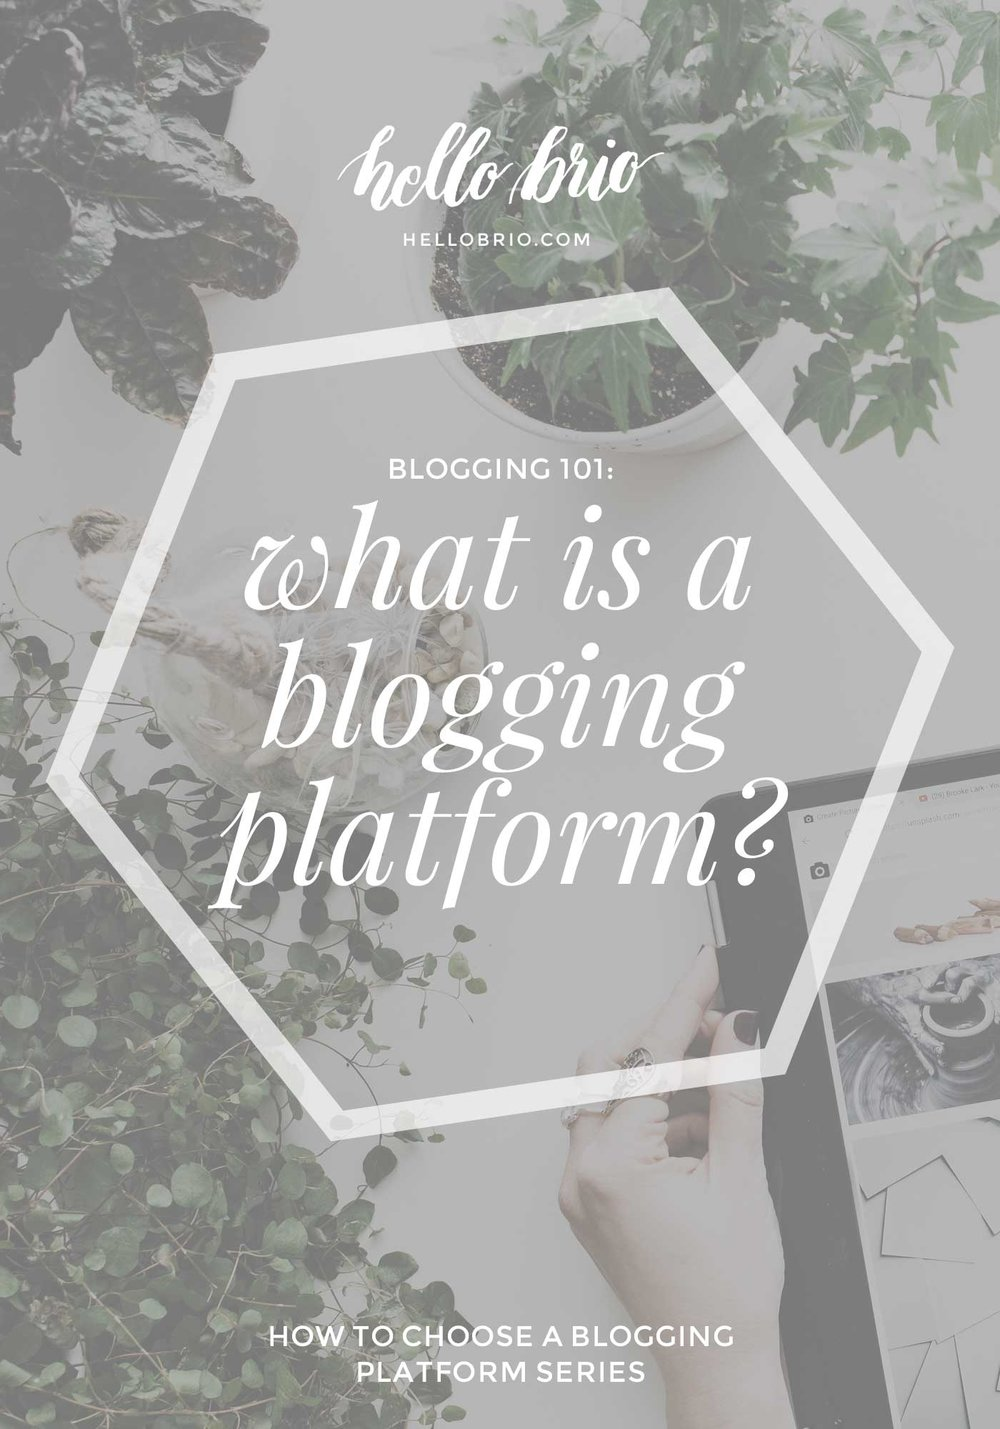 How to choose a blogging platform part 1: what is a blogging platform?